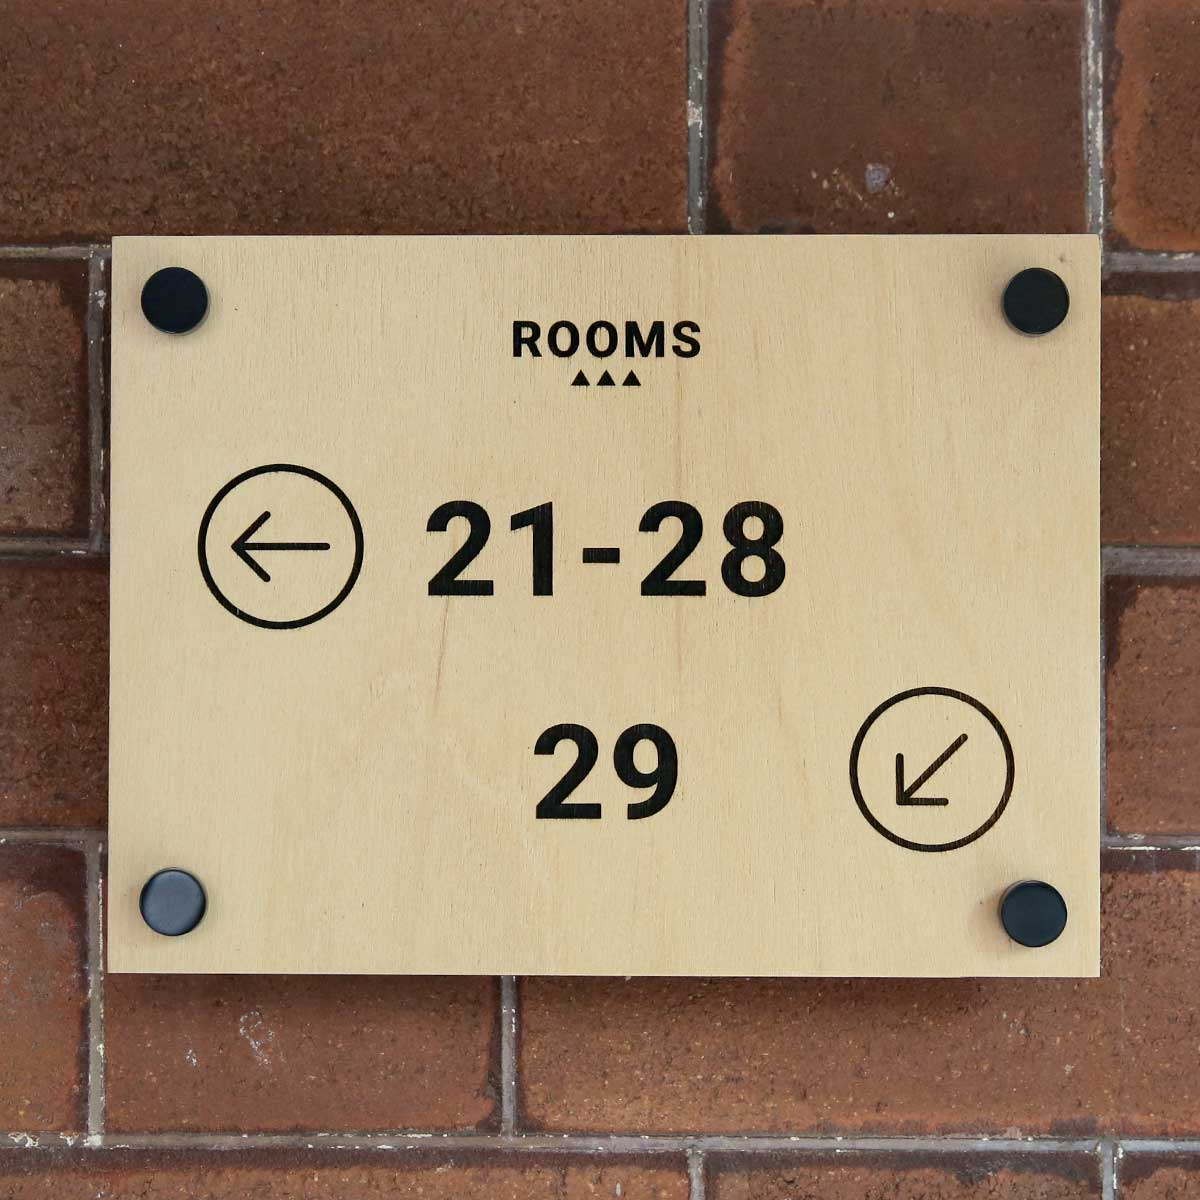 https://thelaserco.com/wp-content/uploads/2020/07/14_Engraved_wayfinding_sign_plywood.jpg